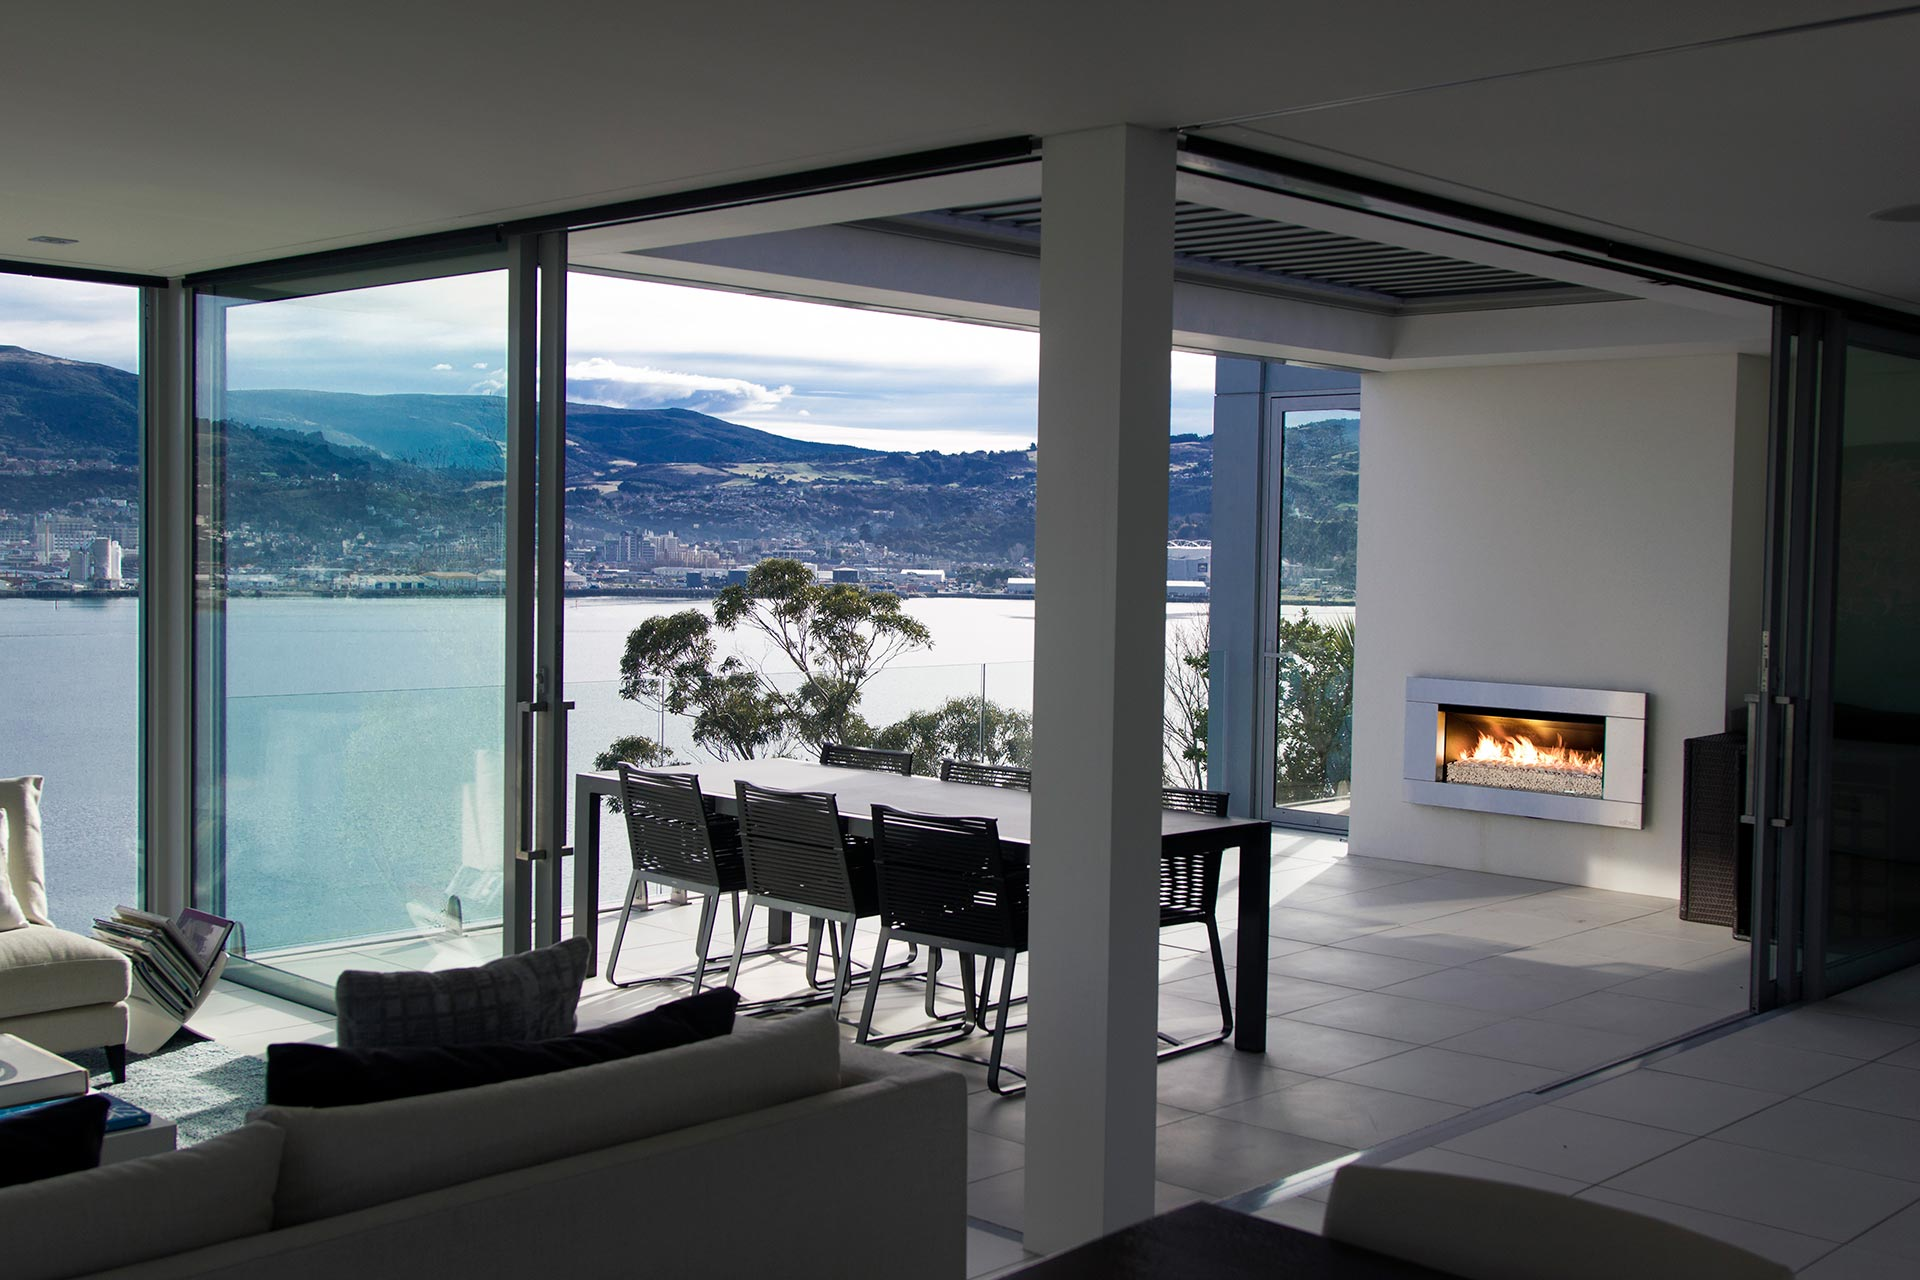 This Dunedin home is a hill-top sanctuary